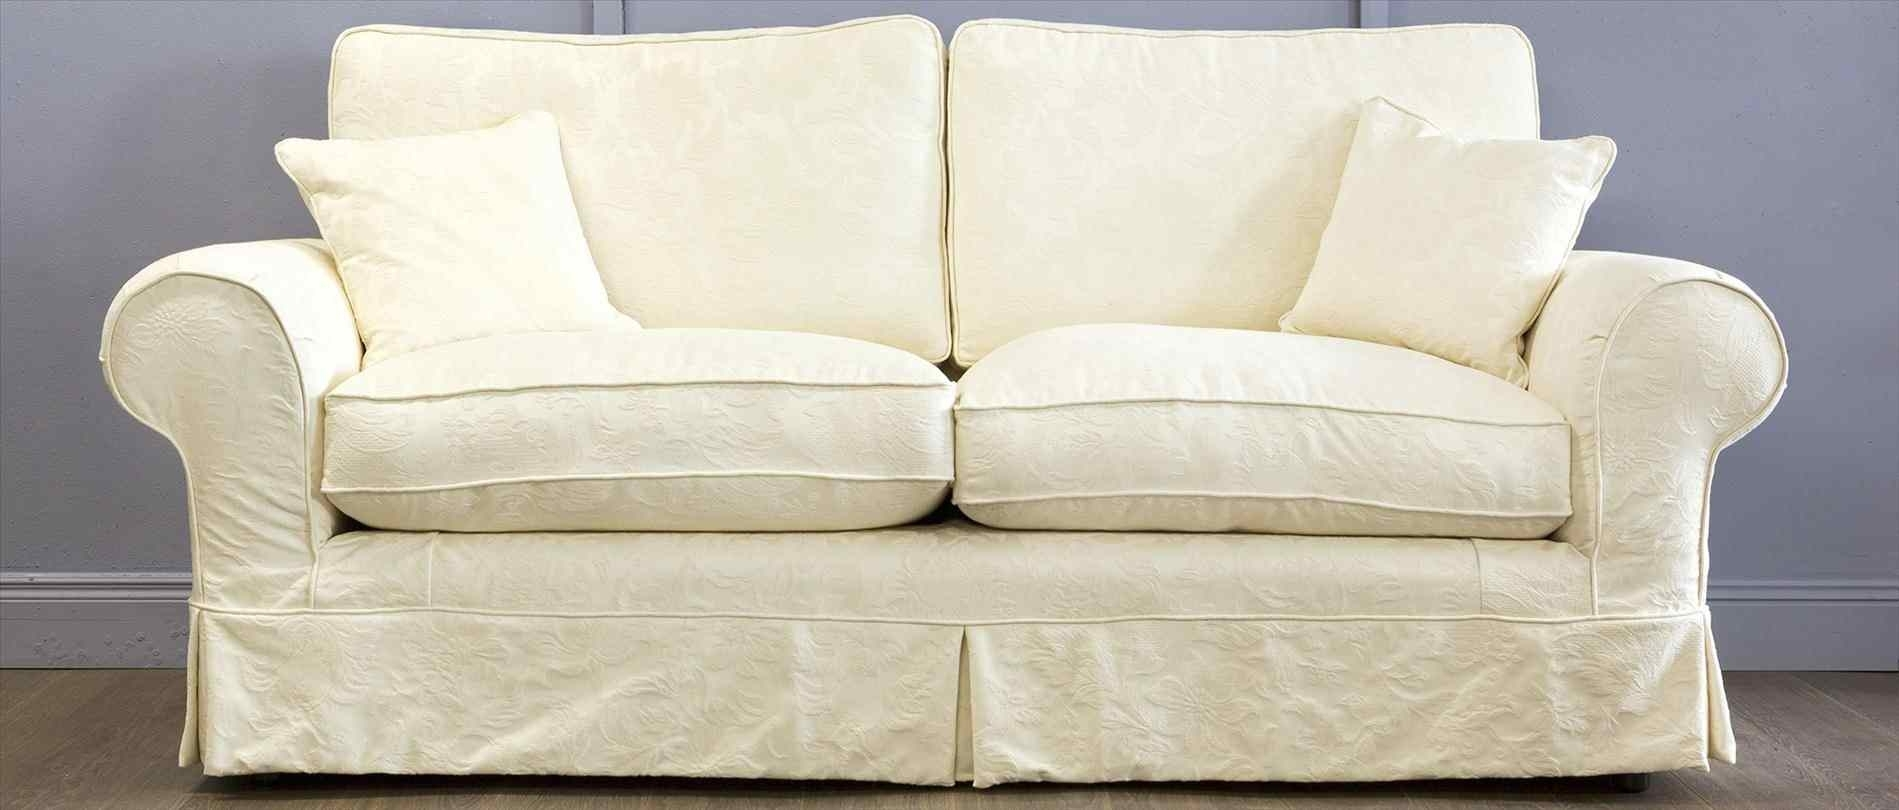 Sofa : Luxurious Sofa With Washable Covers Removable Ideas Amazing within Sofas With Removable Cover (Image 5 of 10)